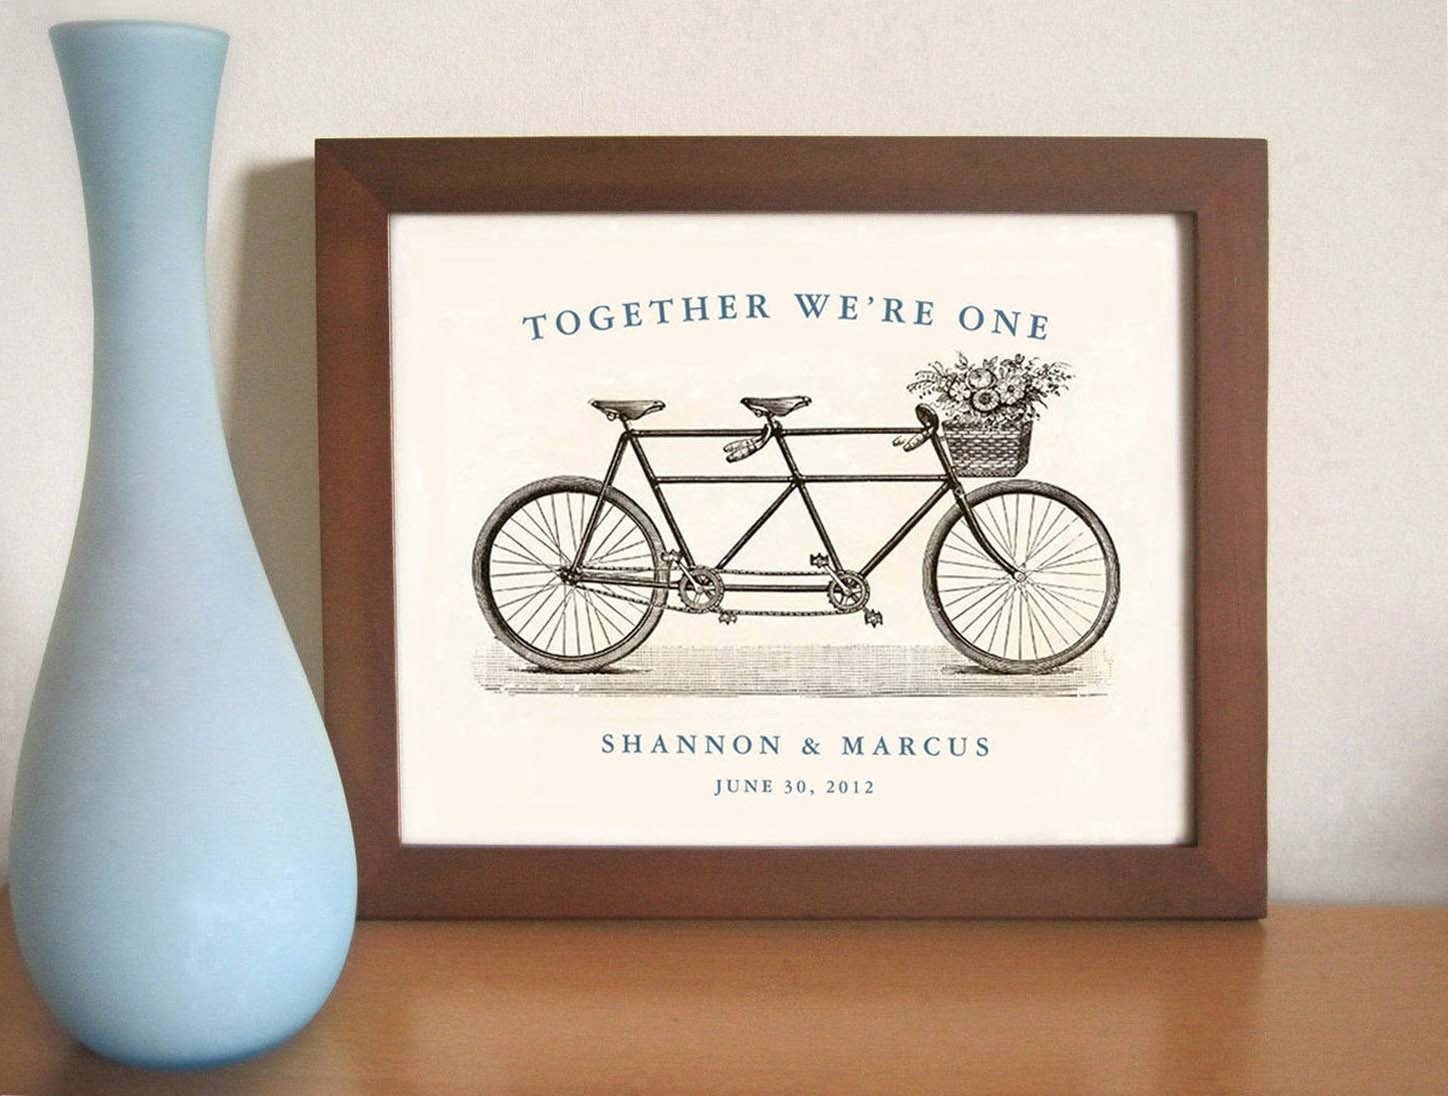 Unique Wedding Gifts Etsy : Tandem Bike Unique Wedding Gift Personalized Art Print by DexMex